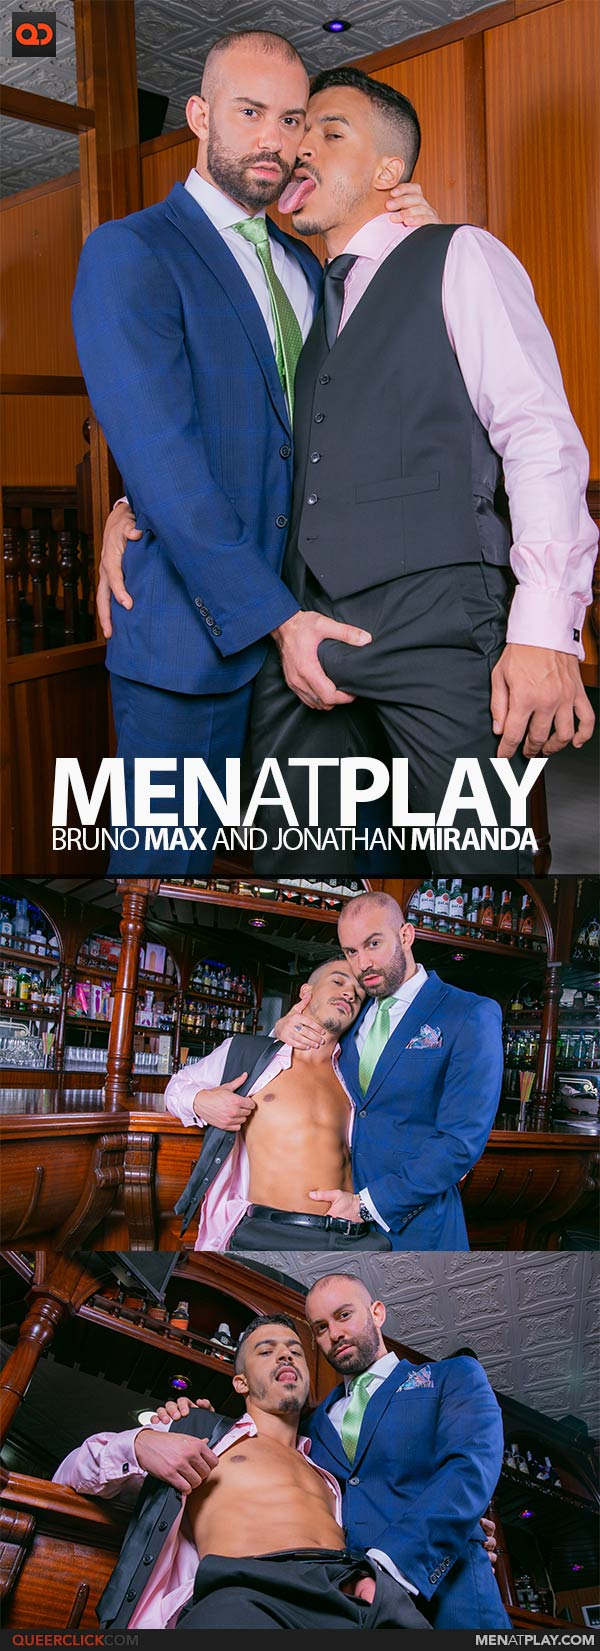 MenAtPlay: Bruno Max and Jonathan Miranda